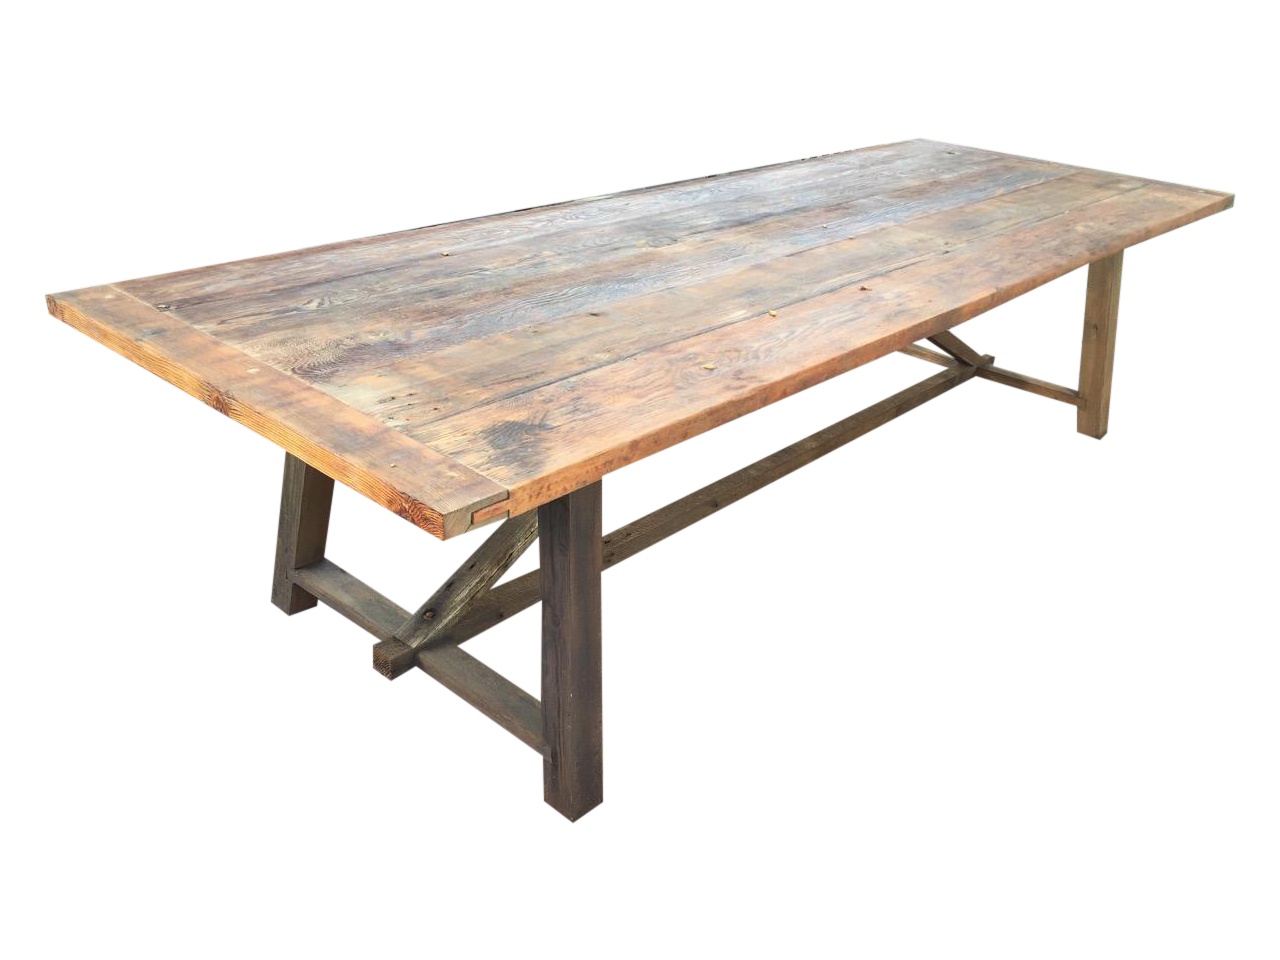 Reclaimed Pine Table Pottery Barn - Reclaimed Outdoor Dining Table : Axiomatica.org